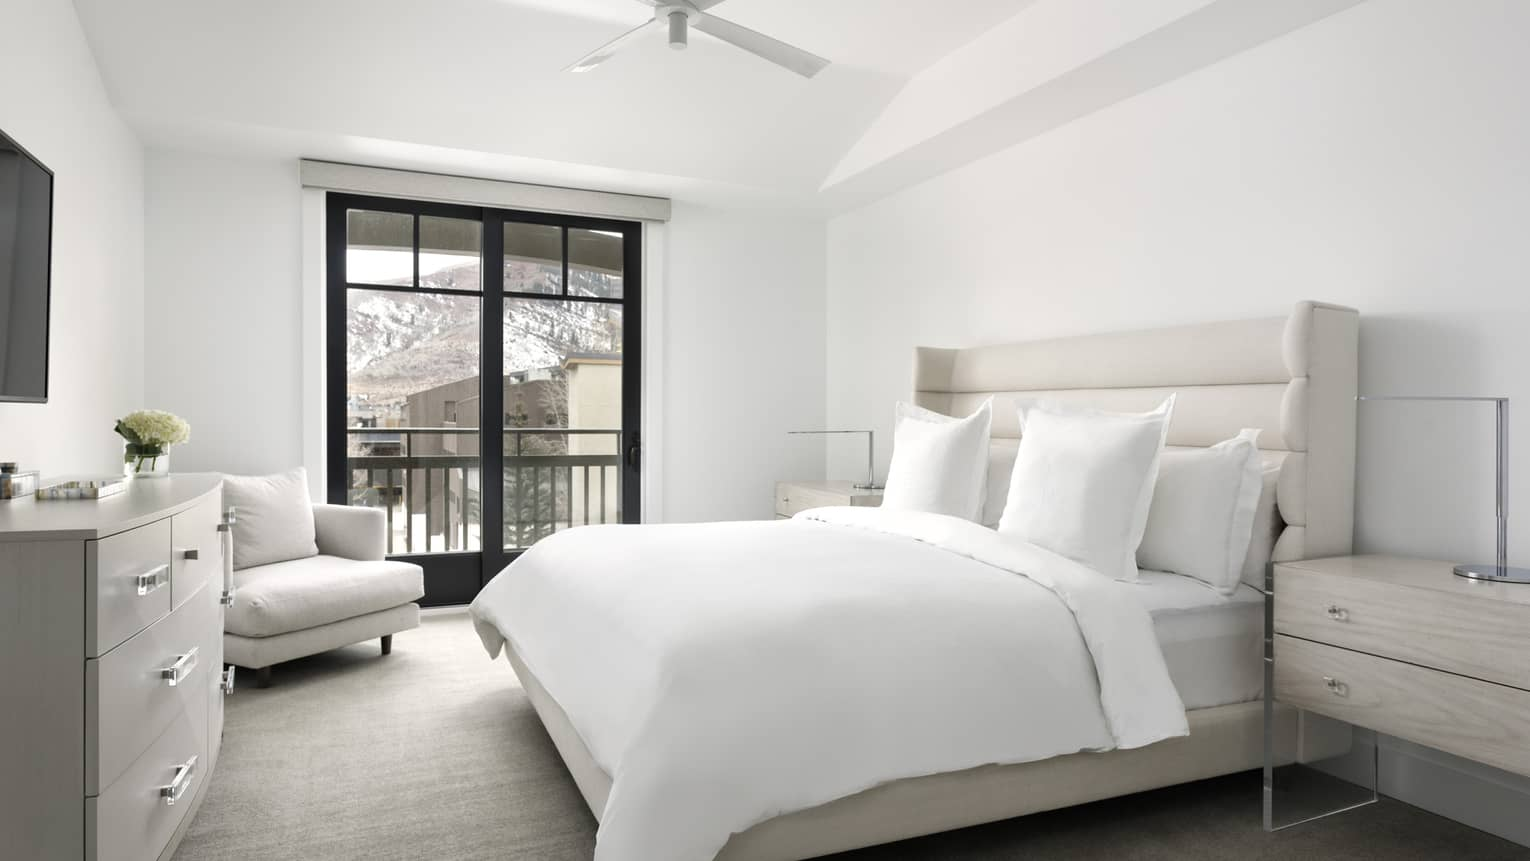 Bedroom with white walls, white king bed, light grey arm chair, dresser, walk-out balcony